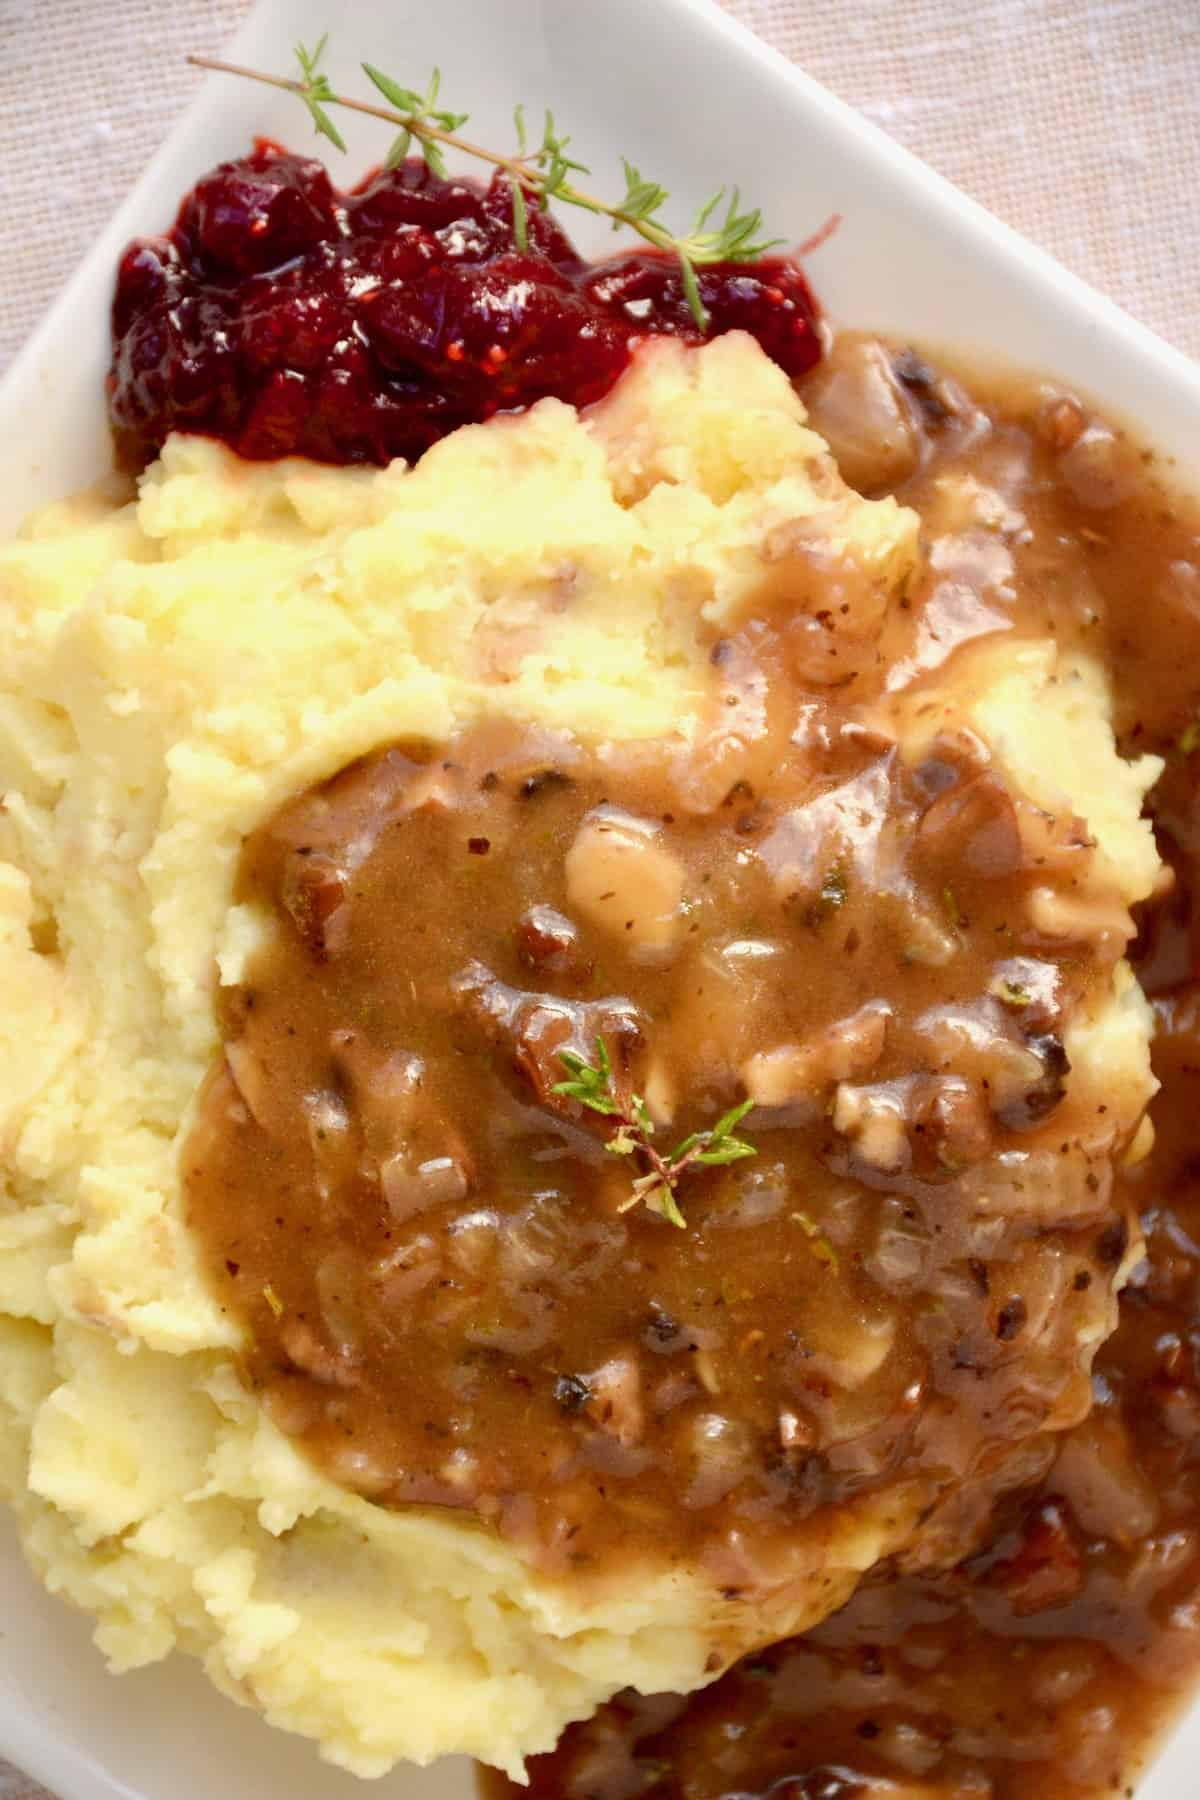 A plate of mashed potato with a generous serving of gravy.